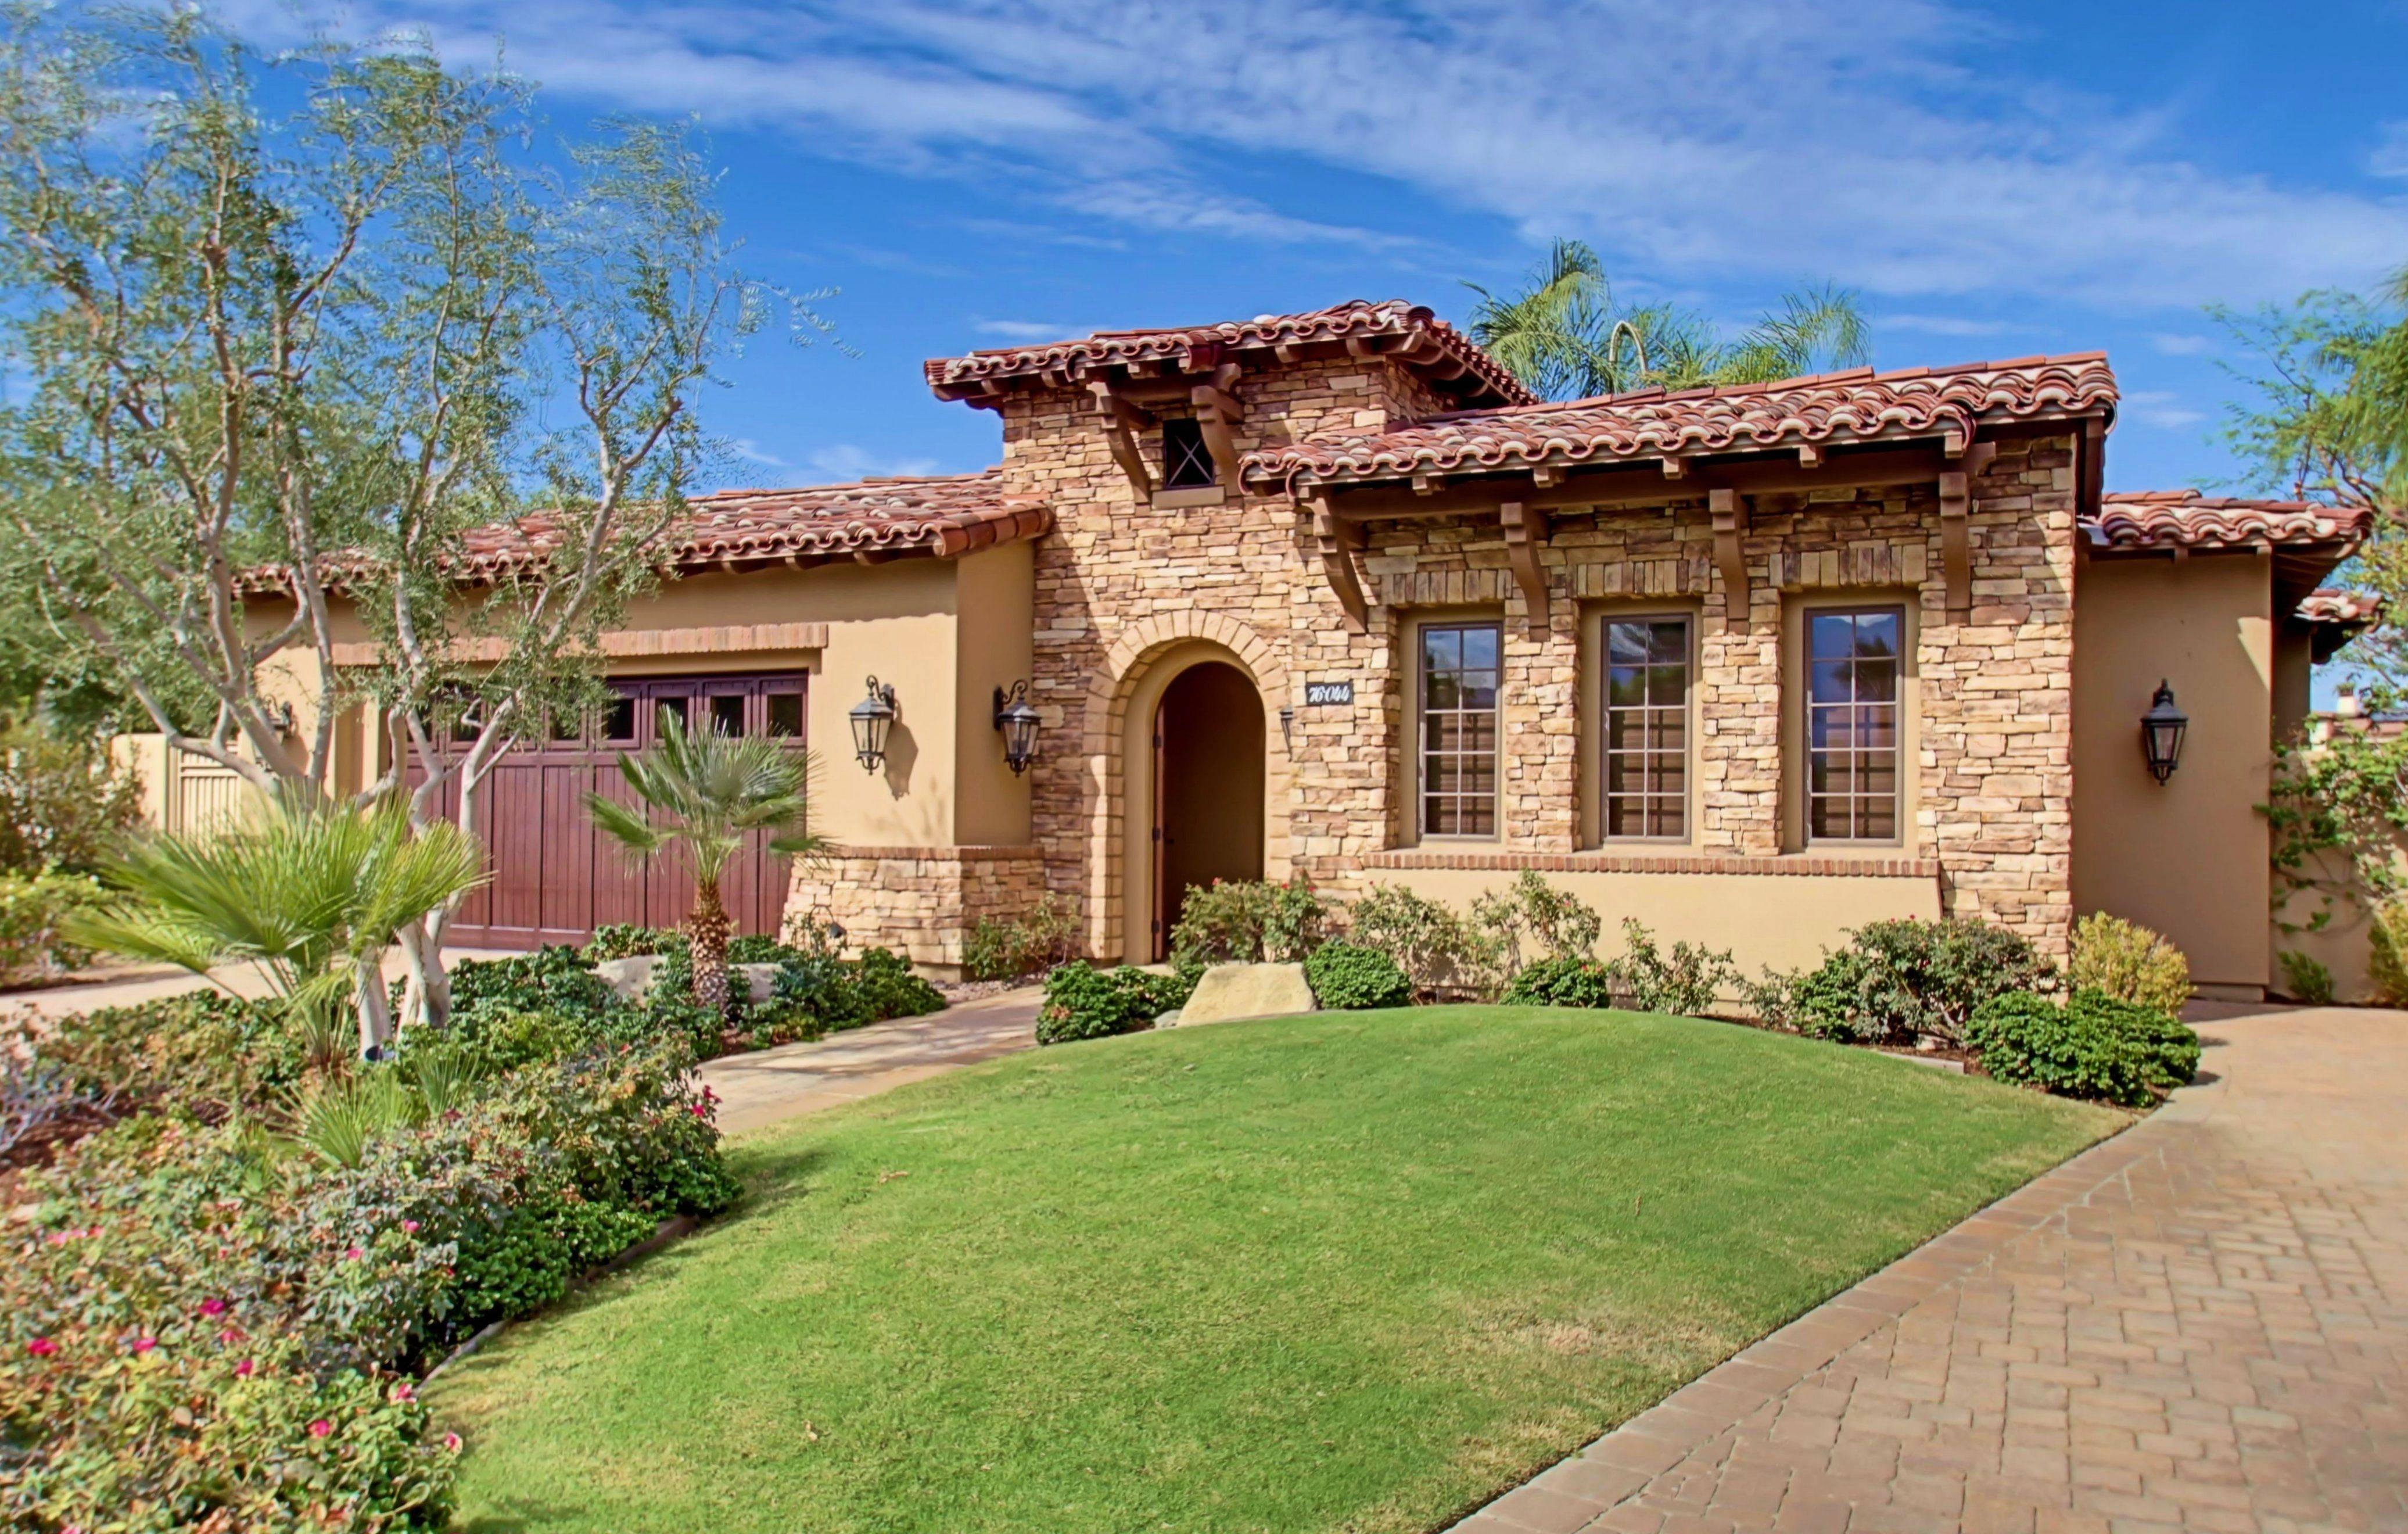 Indian wells toscana country club home for sale Toscana house